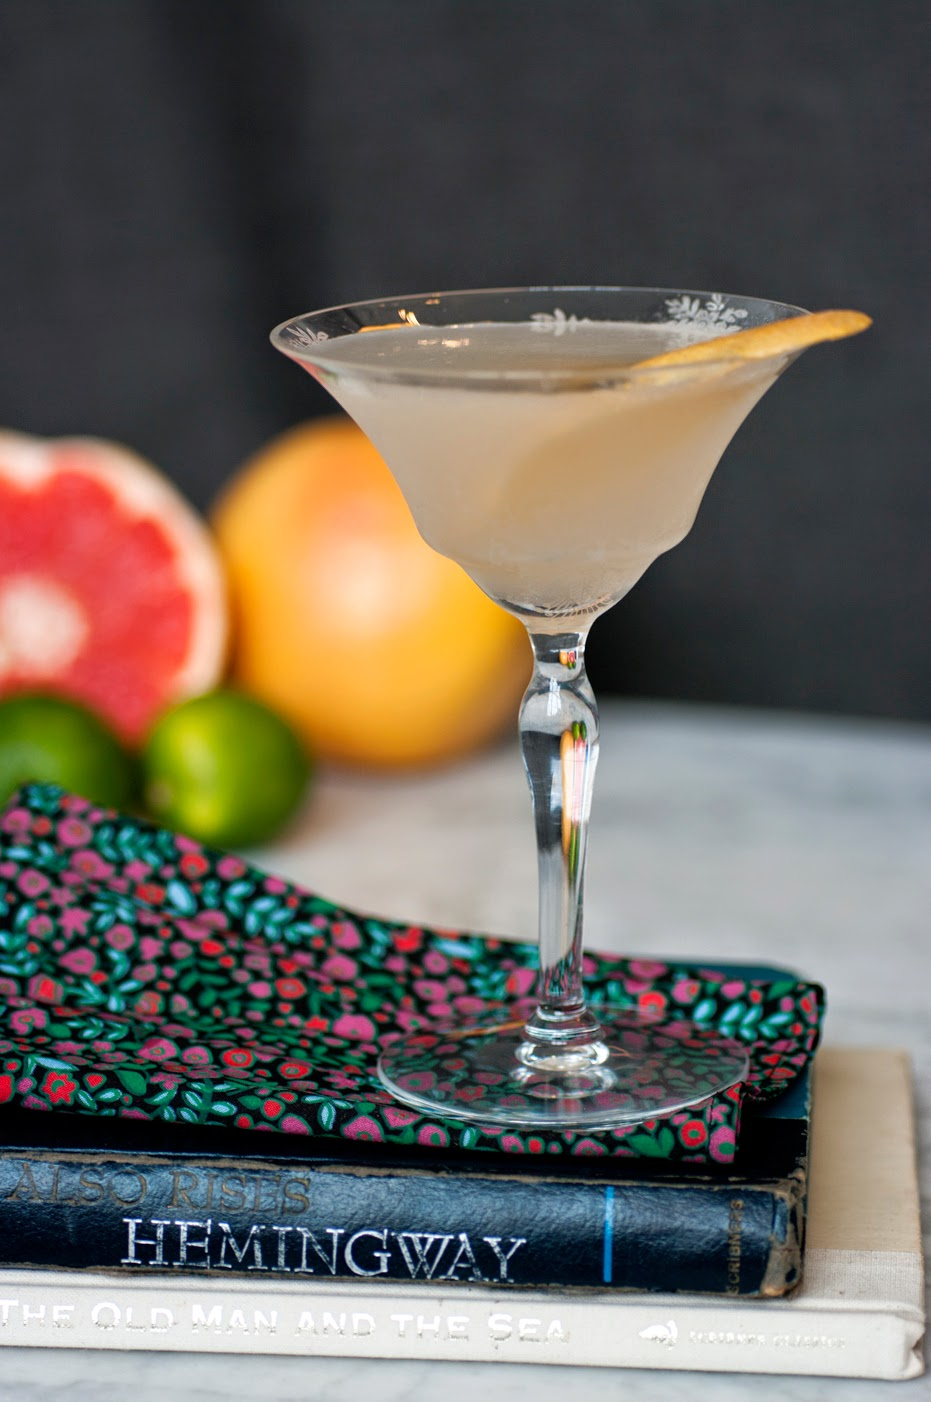 http://postprohibition.com/recipes/hemingway-daiquiri/